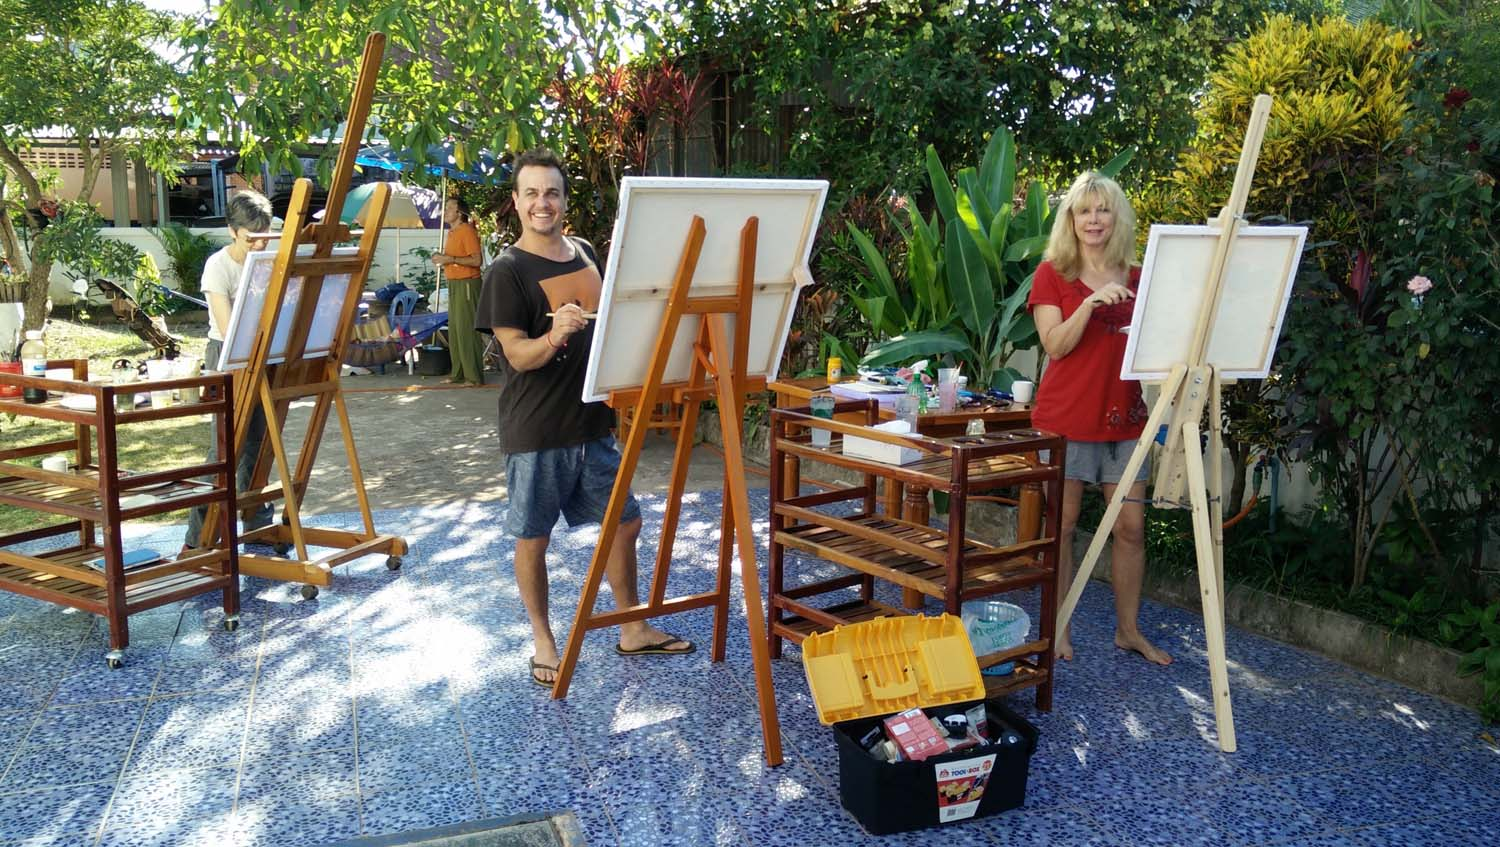 Guests at Thailand Painting Holidays painting in the garden